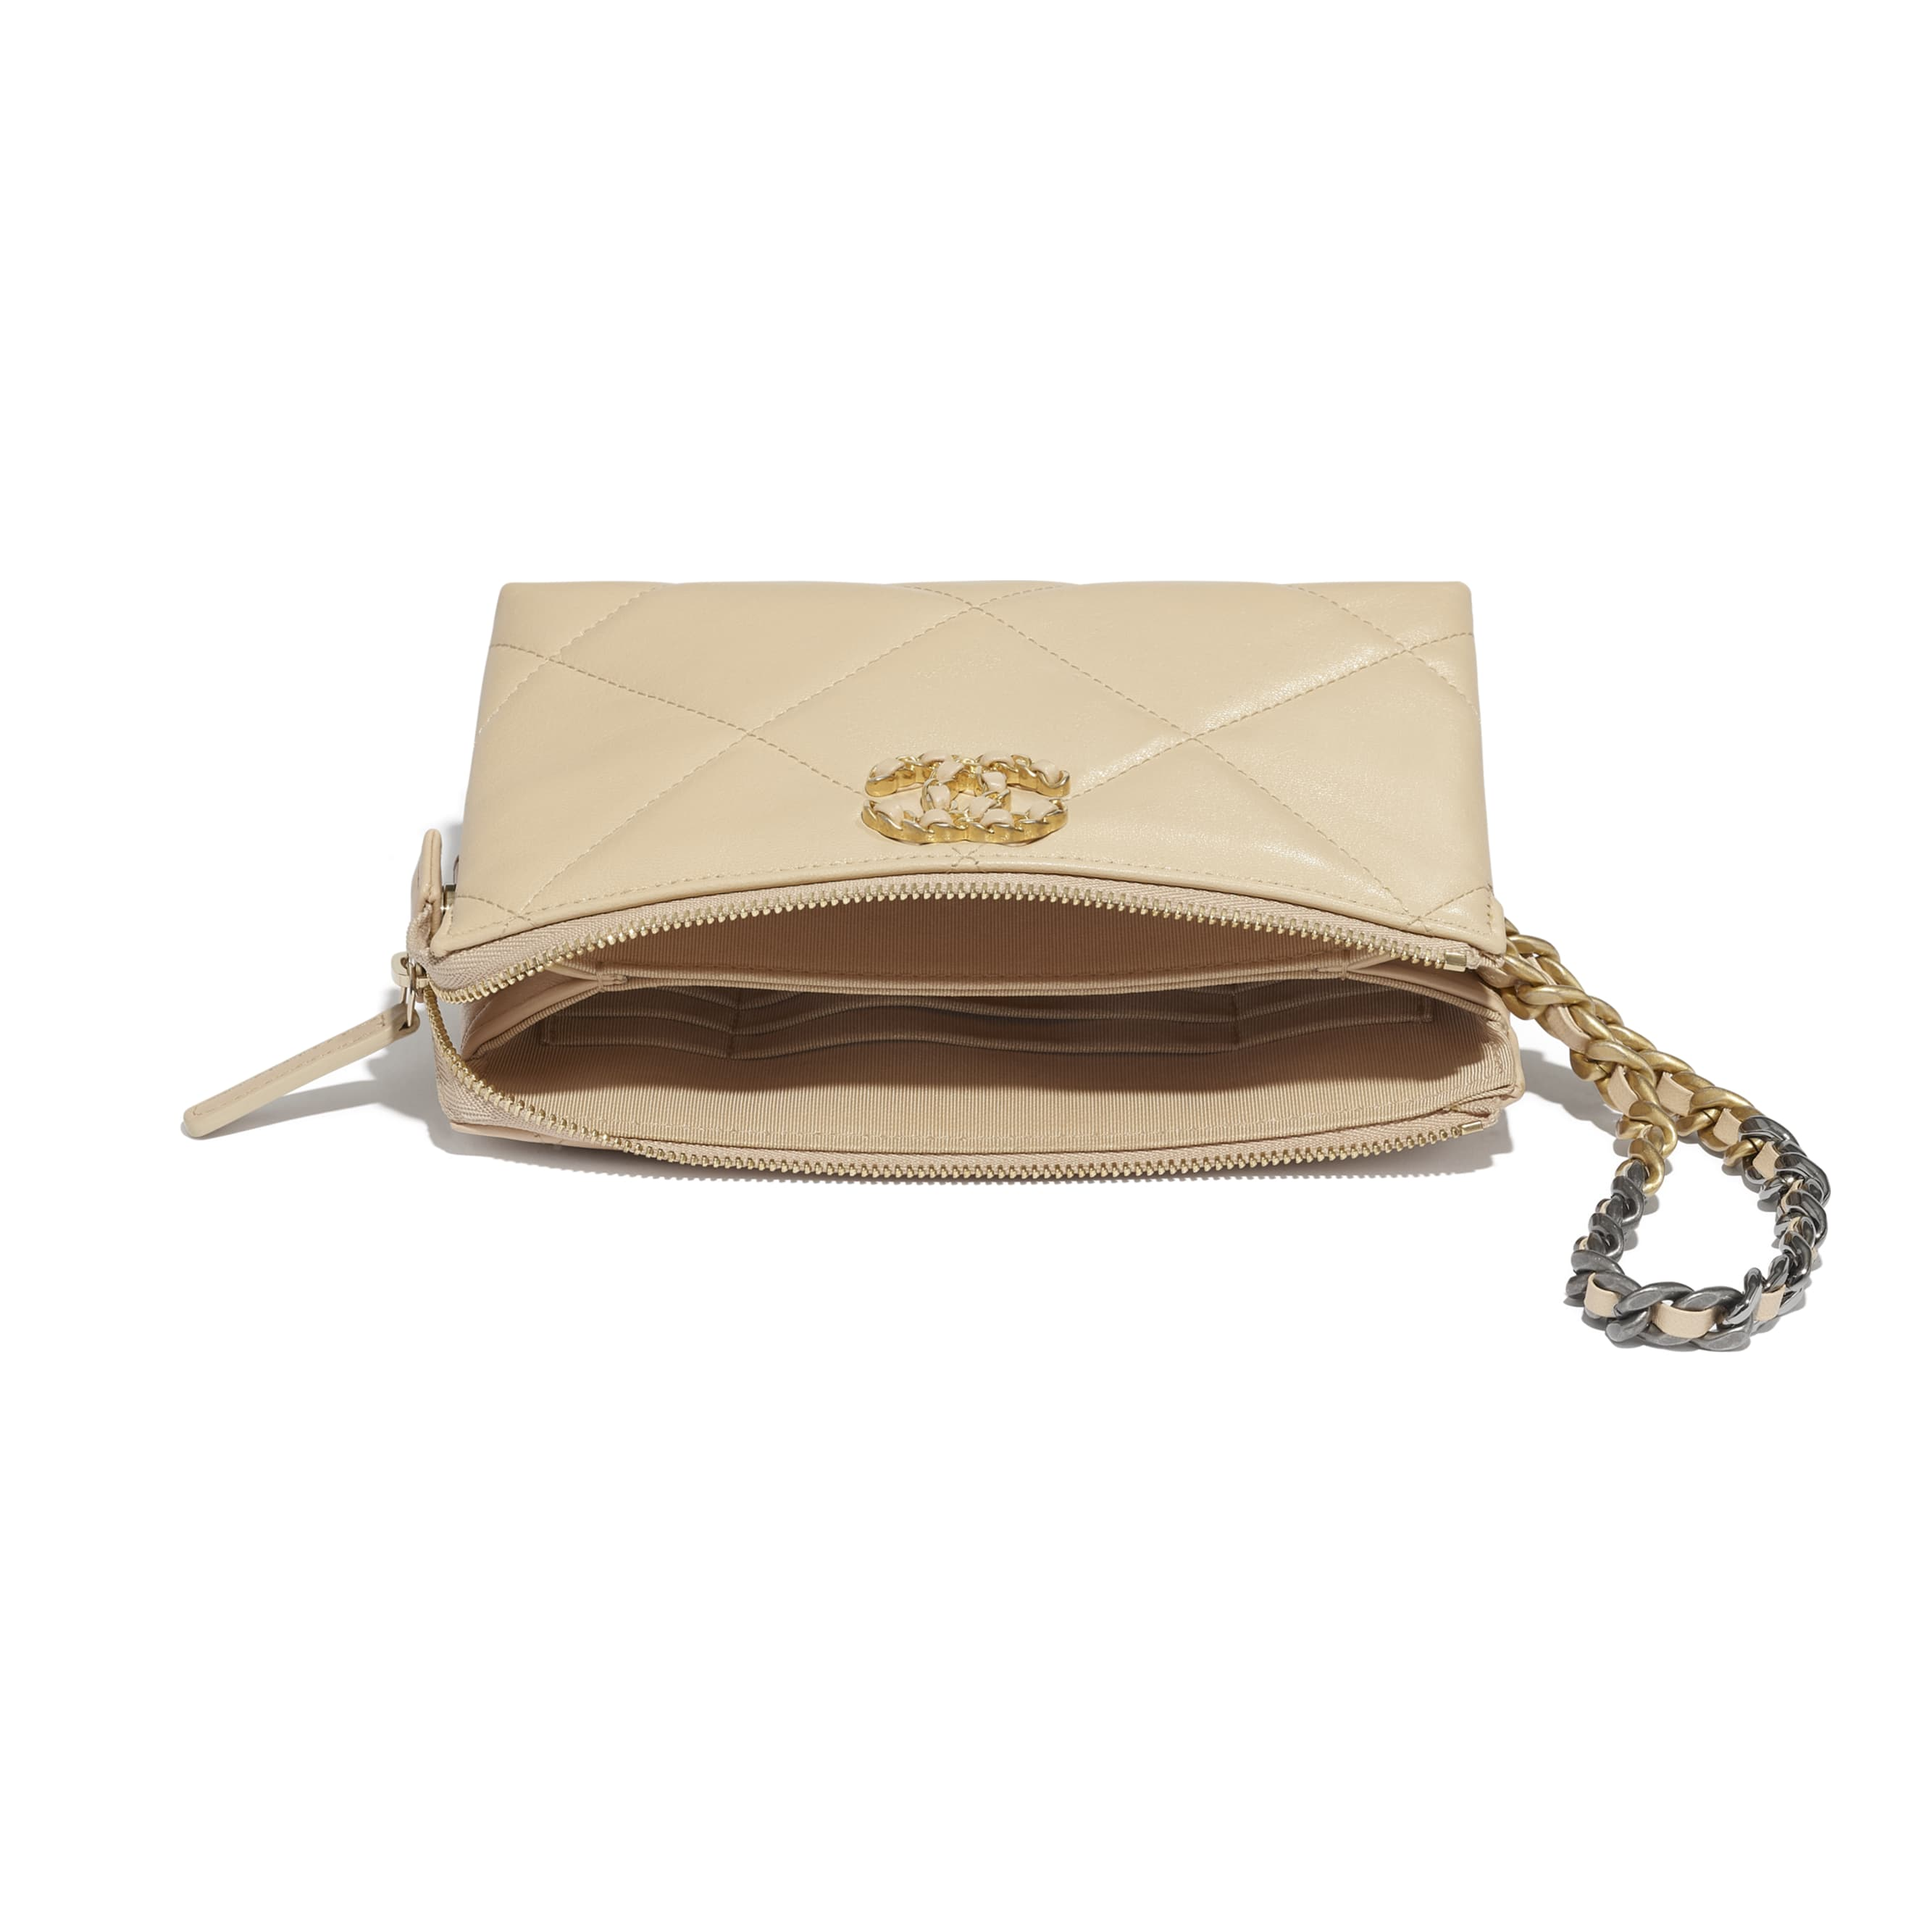 CHANEL 19 Small Pouch with Handle - Beige - Shiny Goatskin, Gold-Tone, Silver-Tone & Ruthenium-Finish Metal - CHANEL - Extra view - see standard sized version